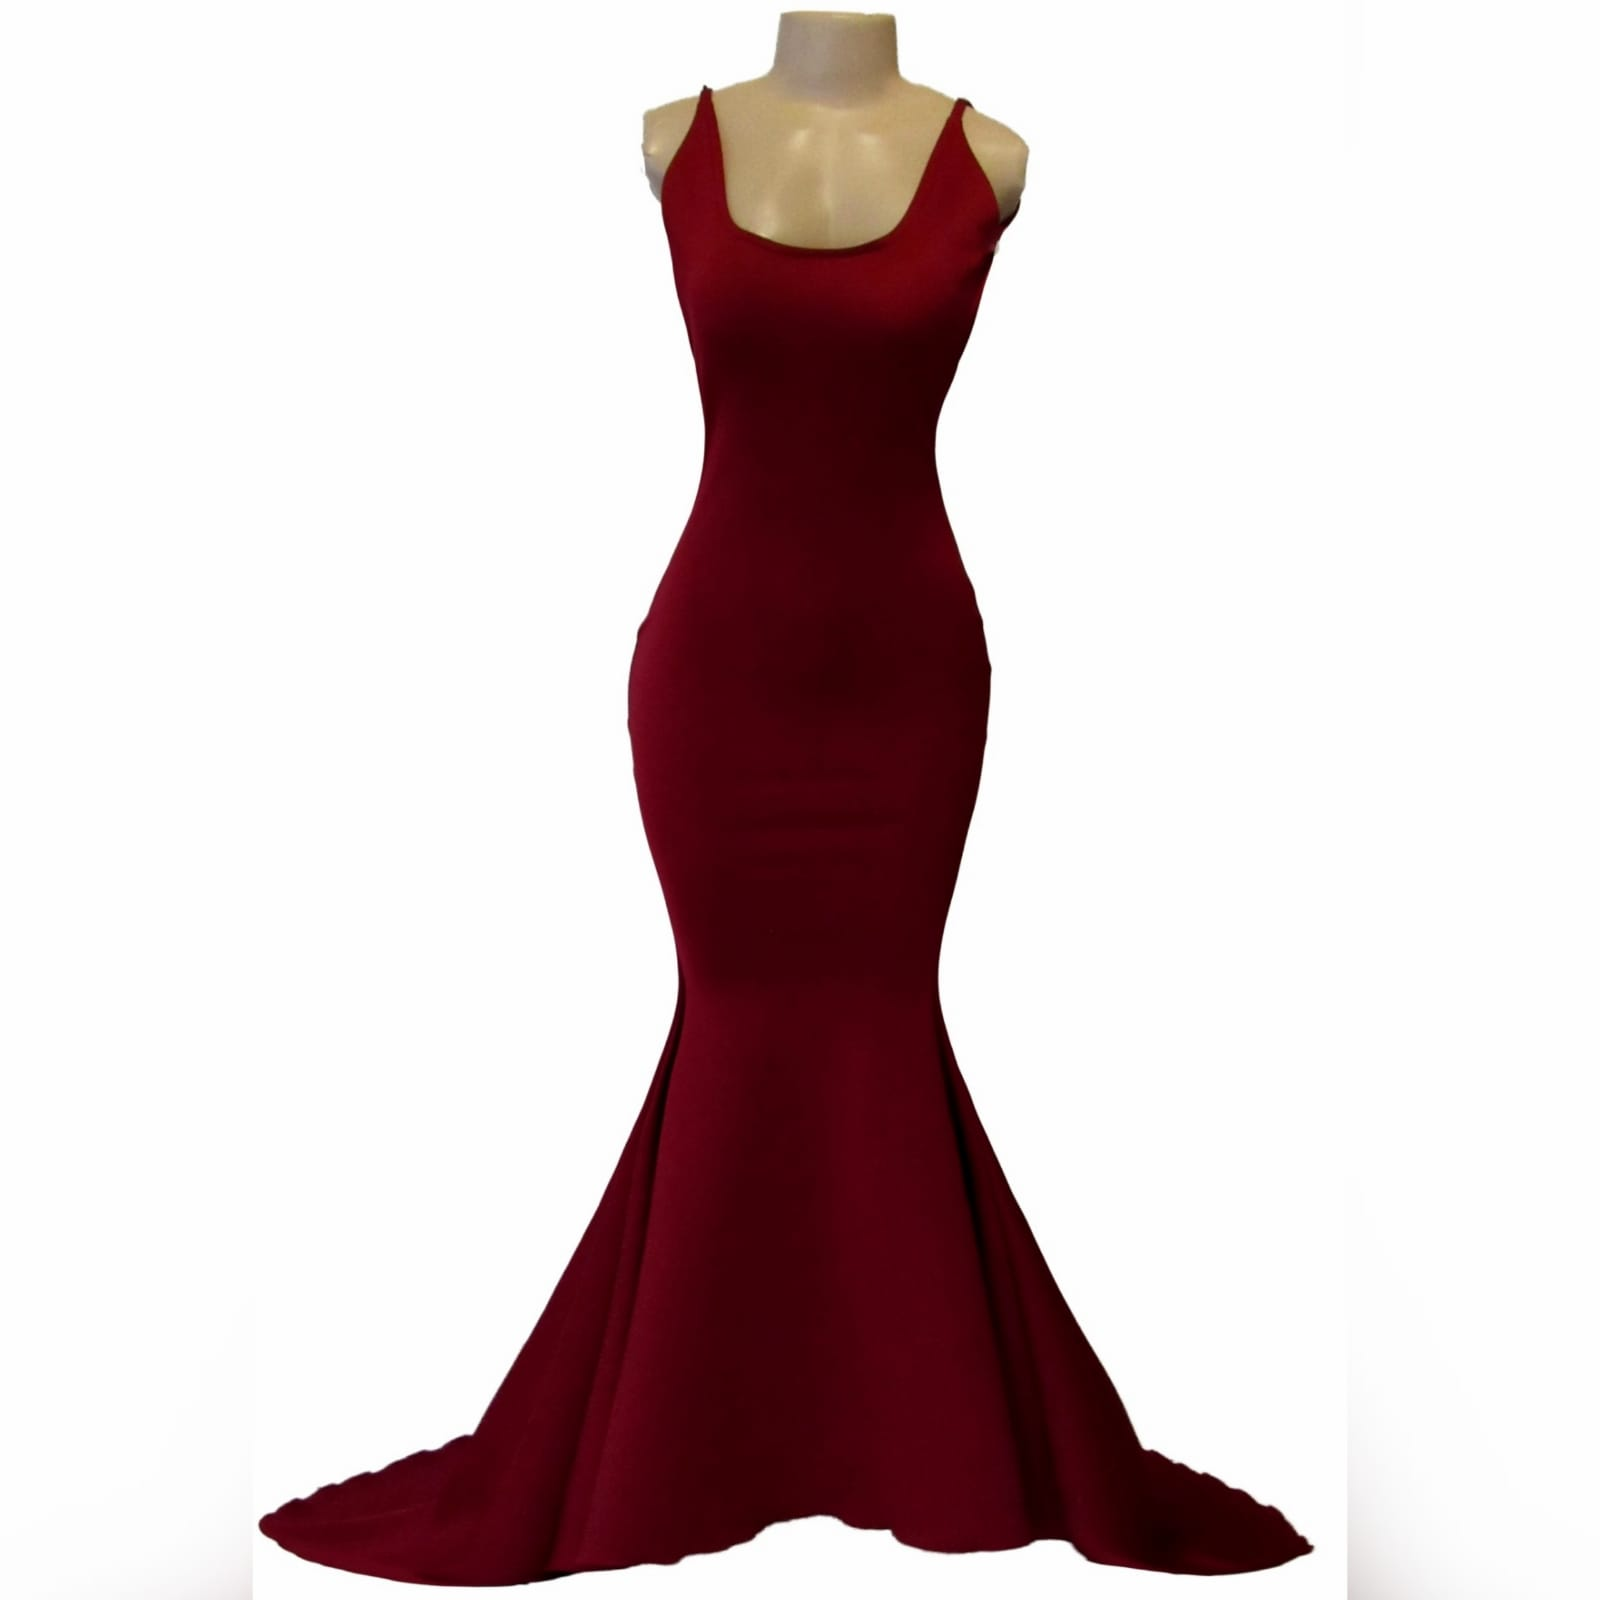 Maroon simple soft mermaid prom dress 3 maroon simple soft mermaid prom dress with a squared neckline, low rounded open back and a little train.